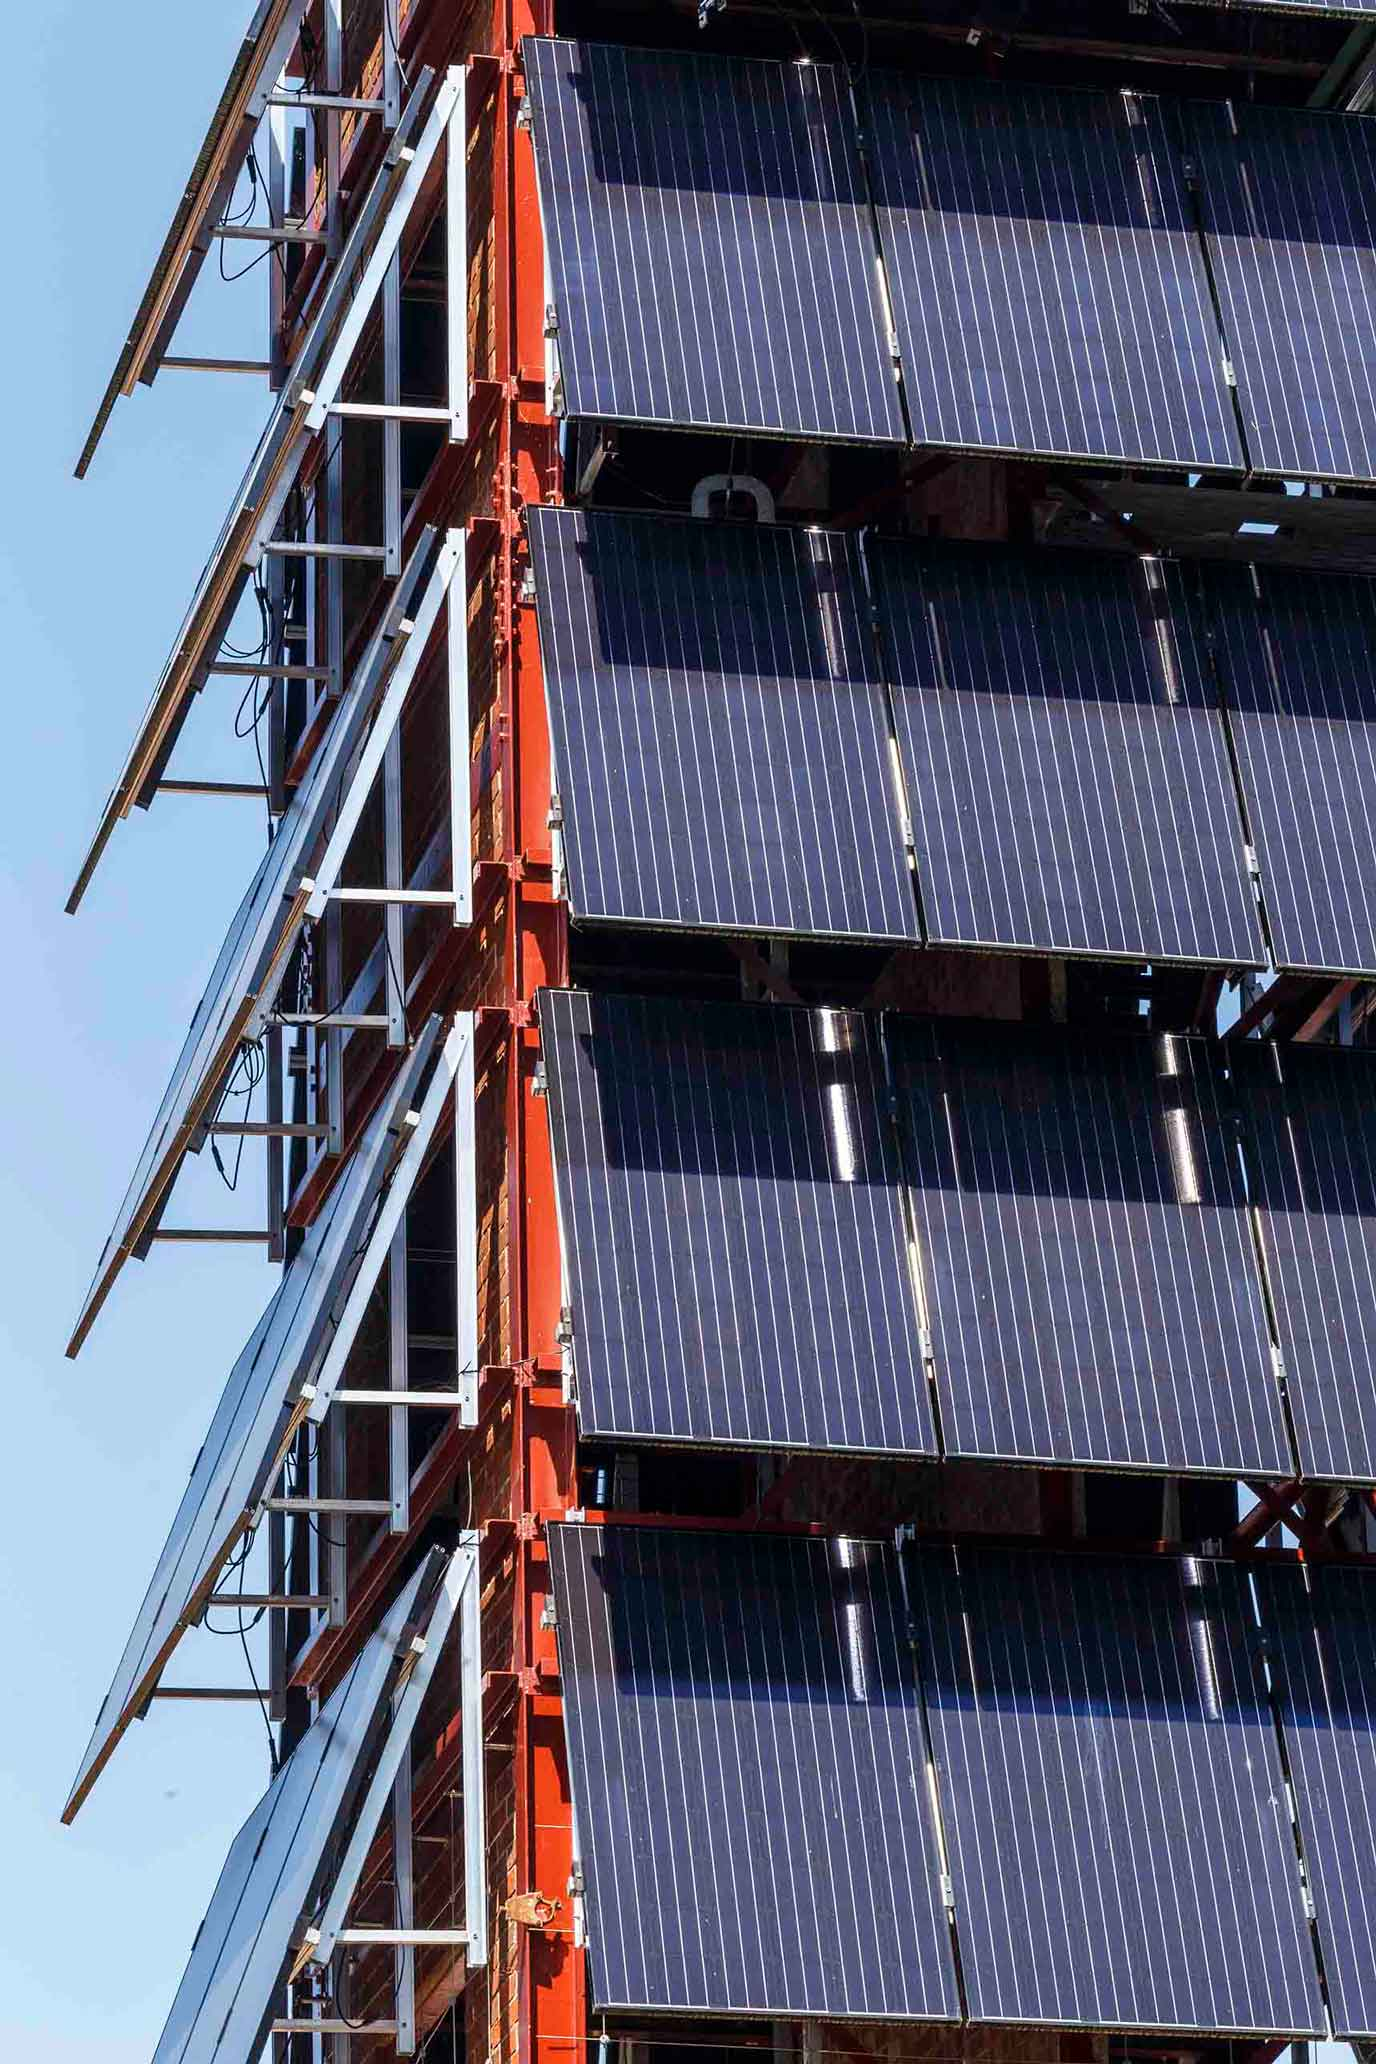 Exhibition Mews Ash Sakula old fireman's tower hosts new PV solar panels